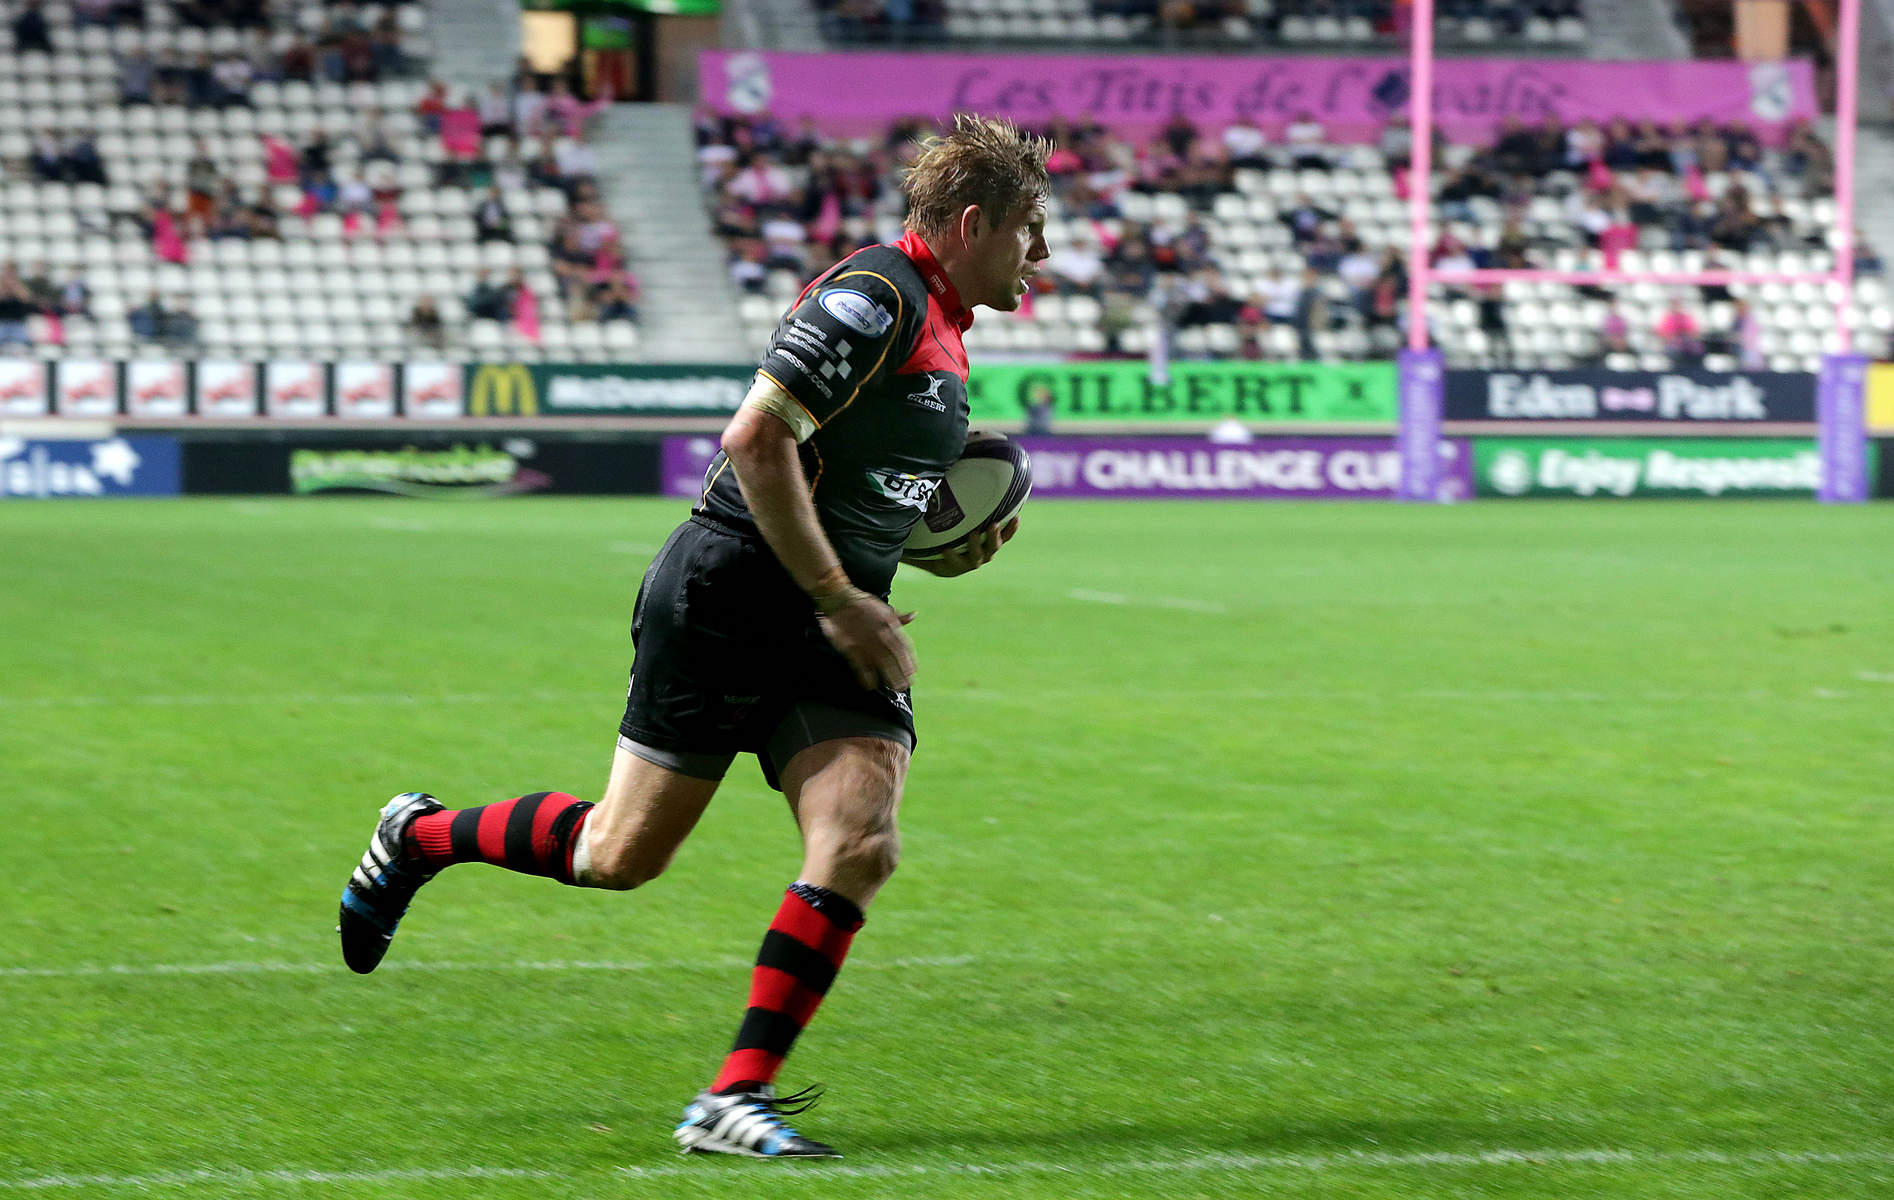 Dragons spirit can down Falcons - Byrne